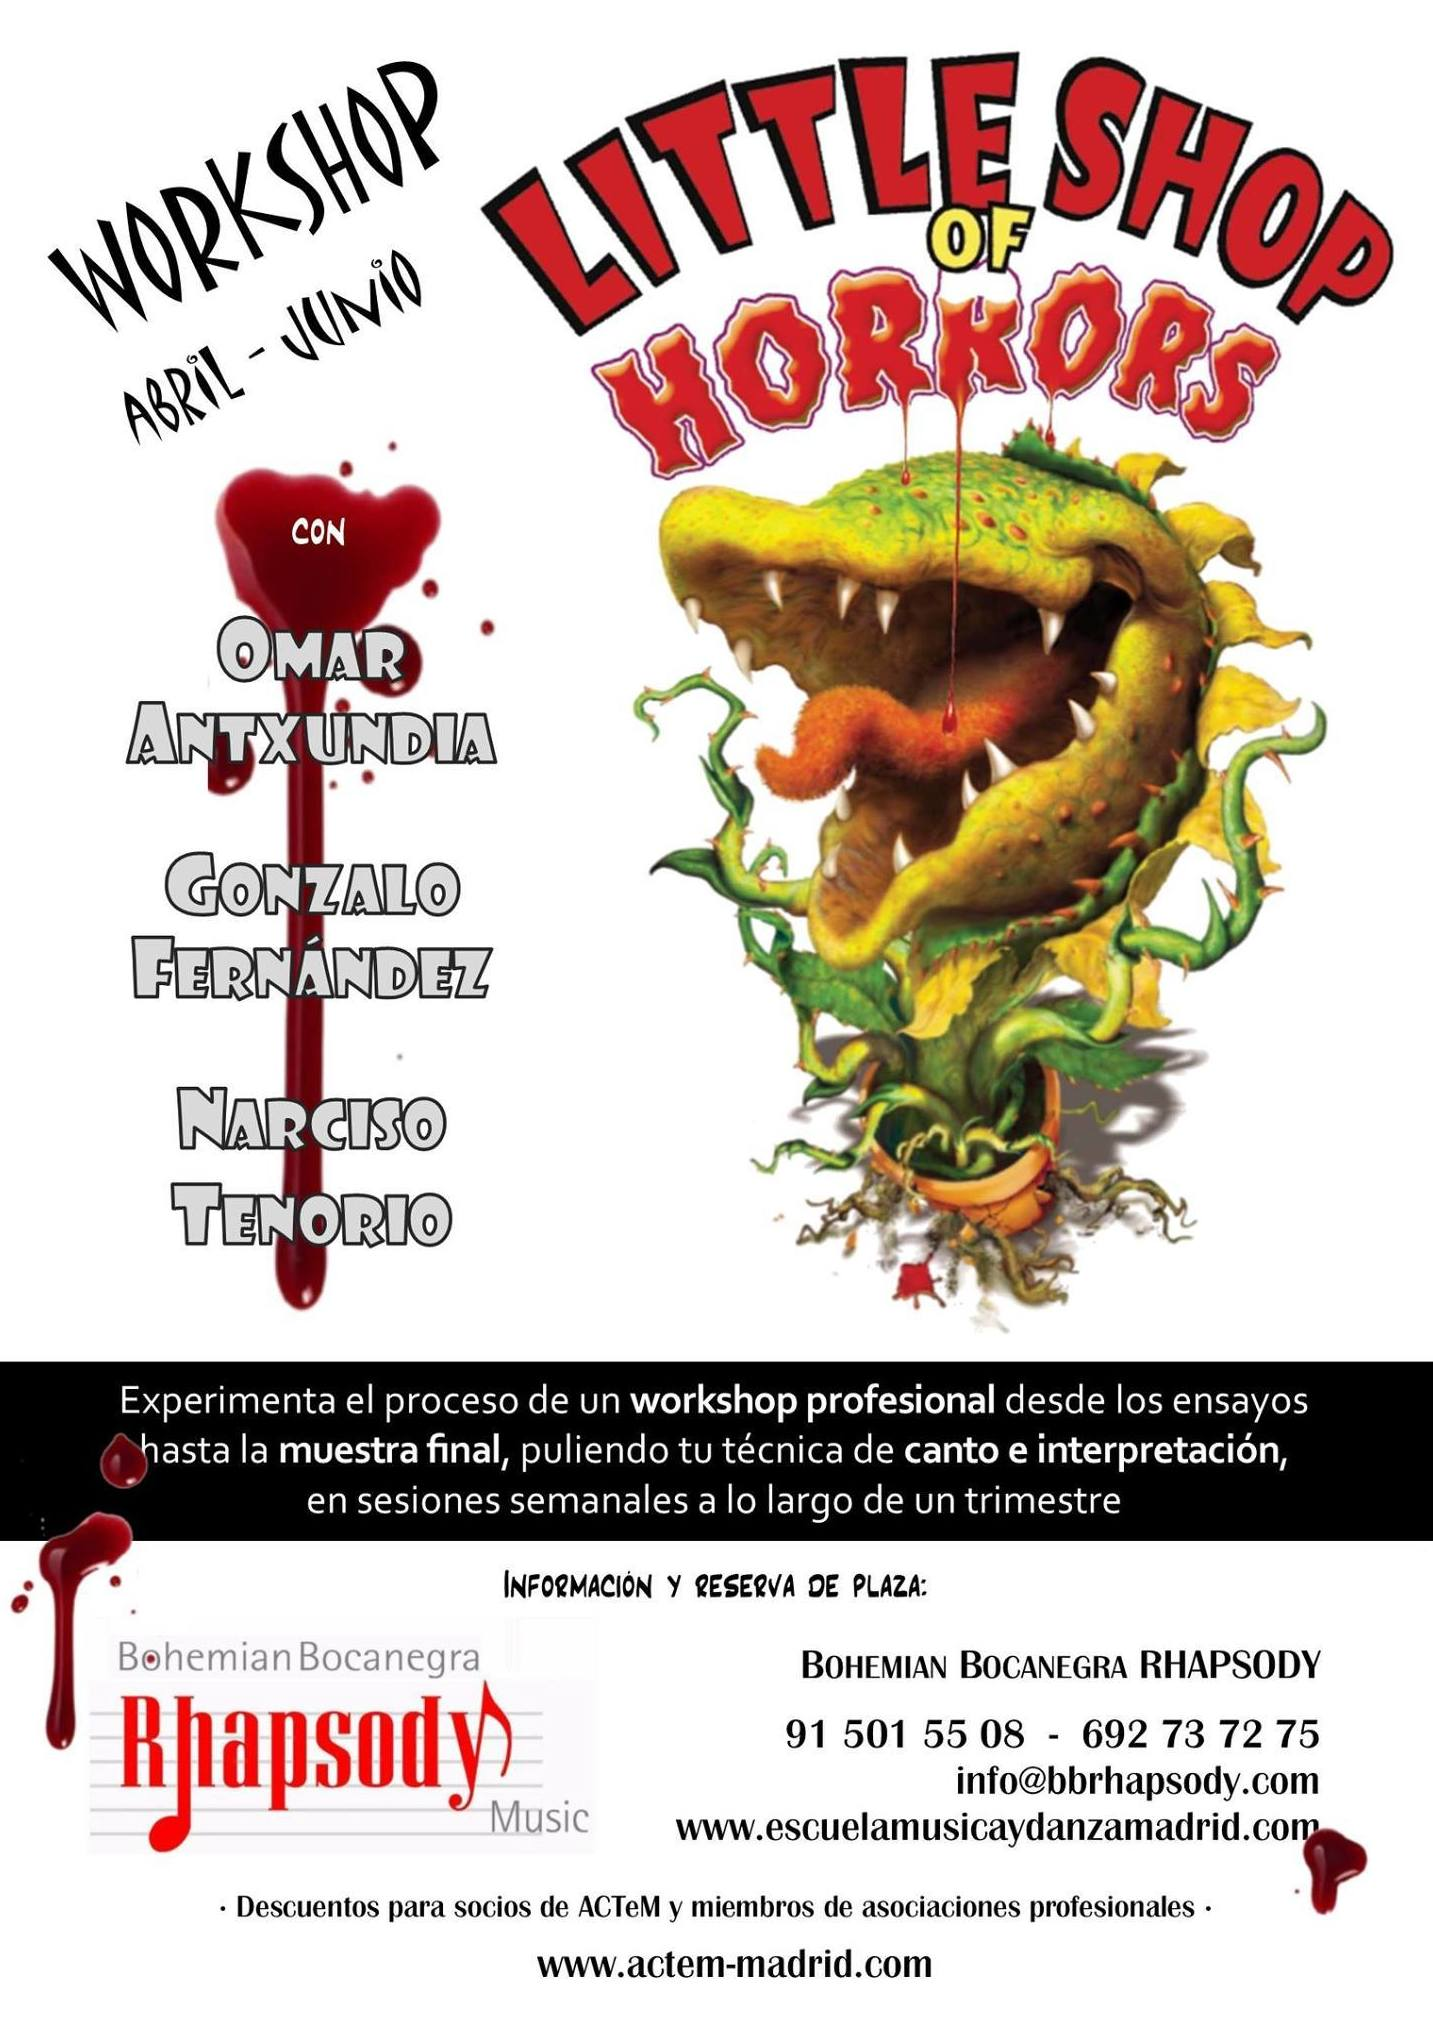 "Workshop ""LITTLE SHOP OF HORRORS"" (Montaje de una obra musical): Catálogo formación de Bohemian Bocanegra Rhapsody Music"